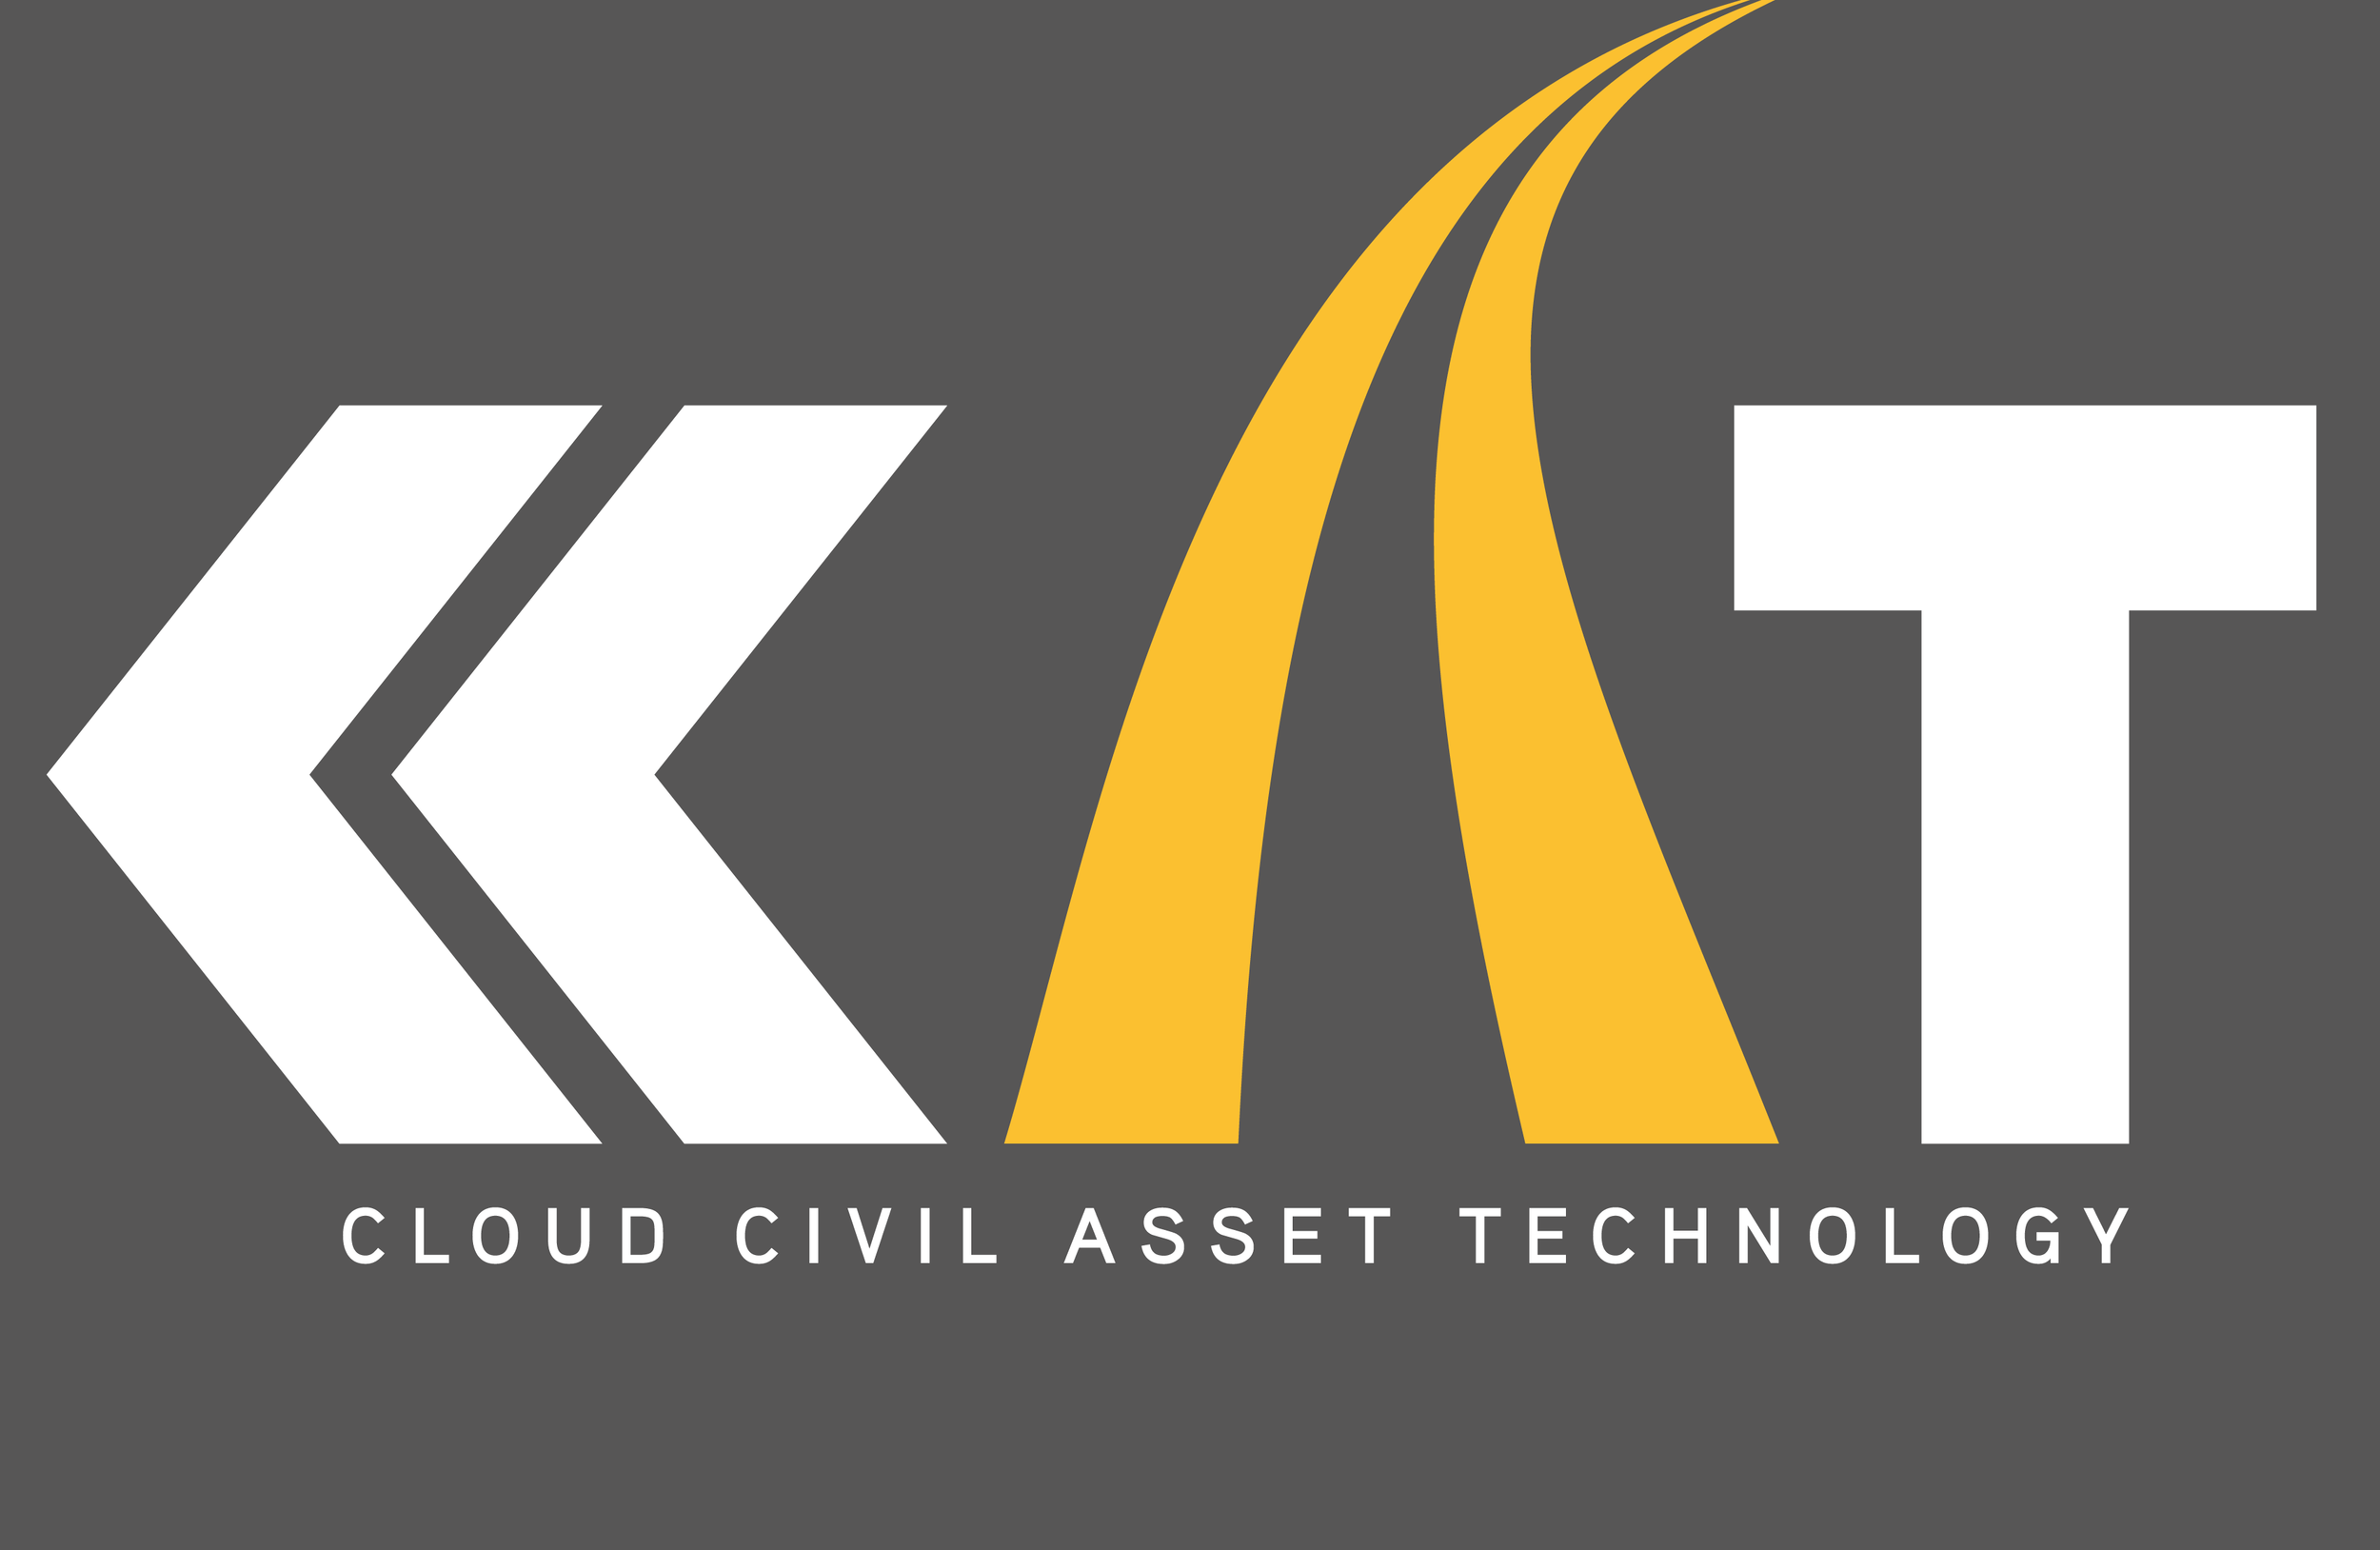 Case Solution - CLOUD CAT is a Joint Venture between ISW and Stornoway, applying IoT and AI into an innovative, real-world cost saving, value-adding industry solution. Click the logo to find out more!